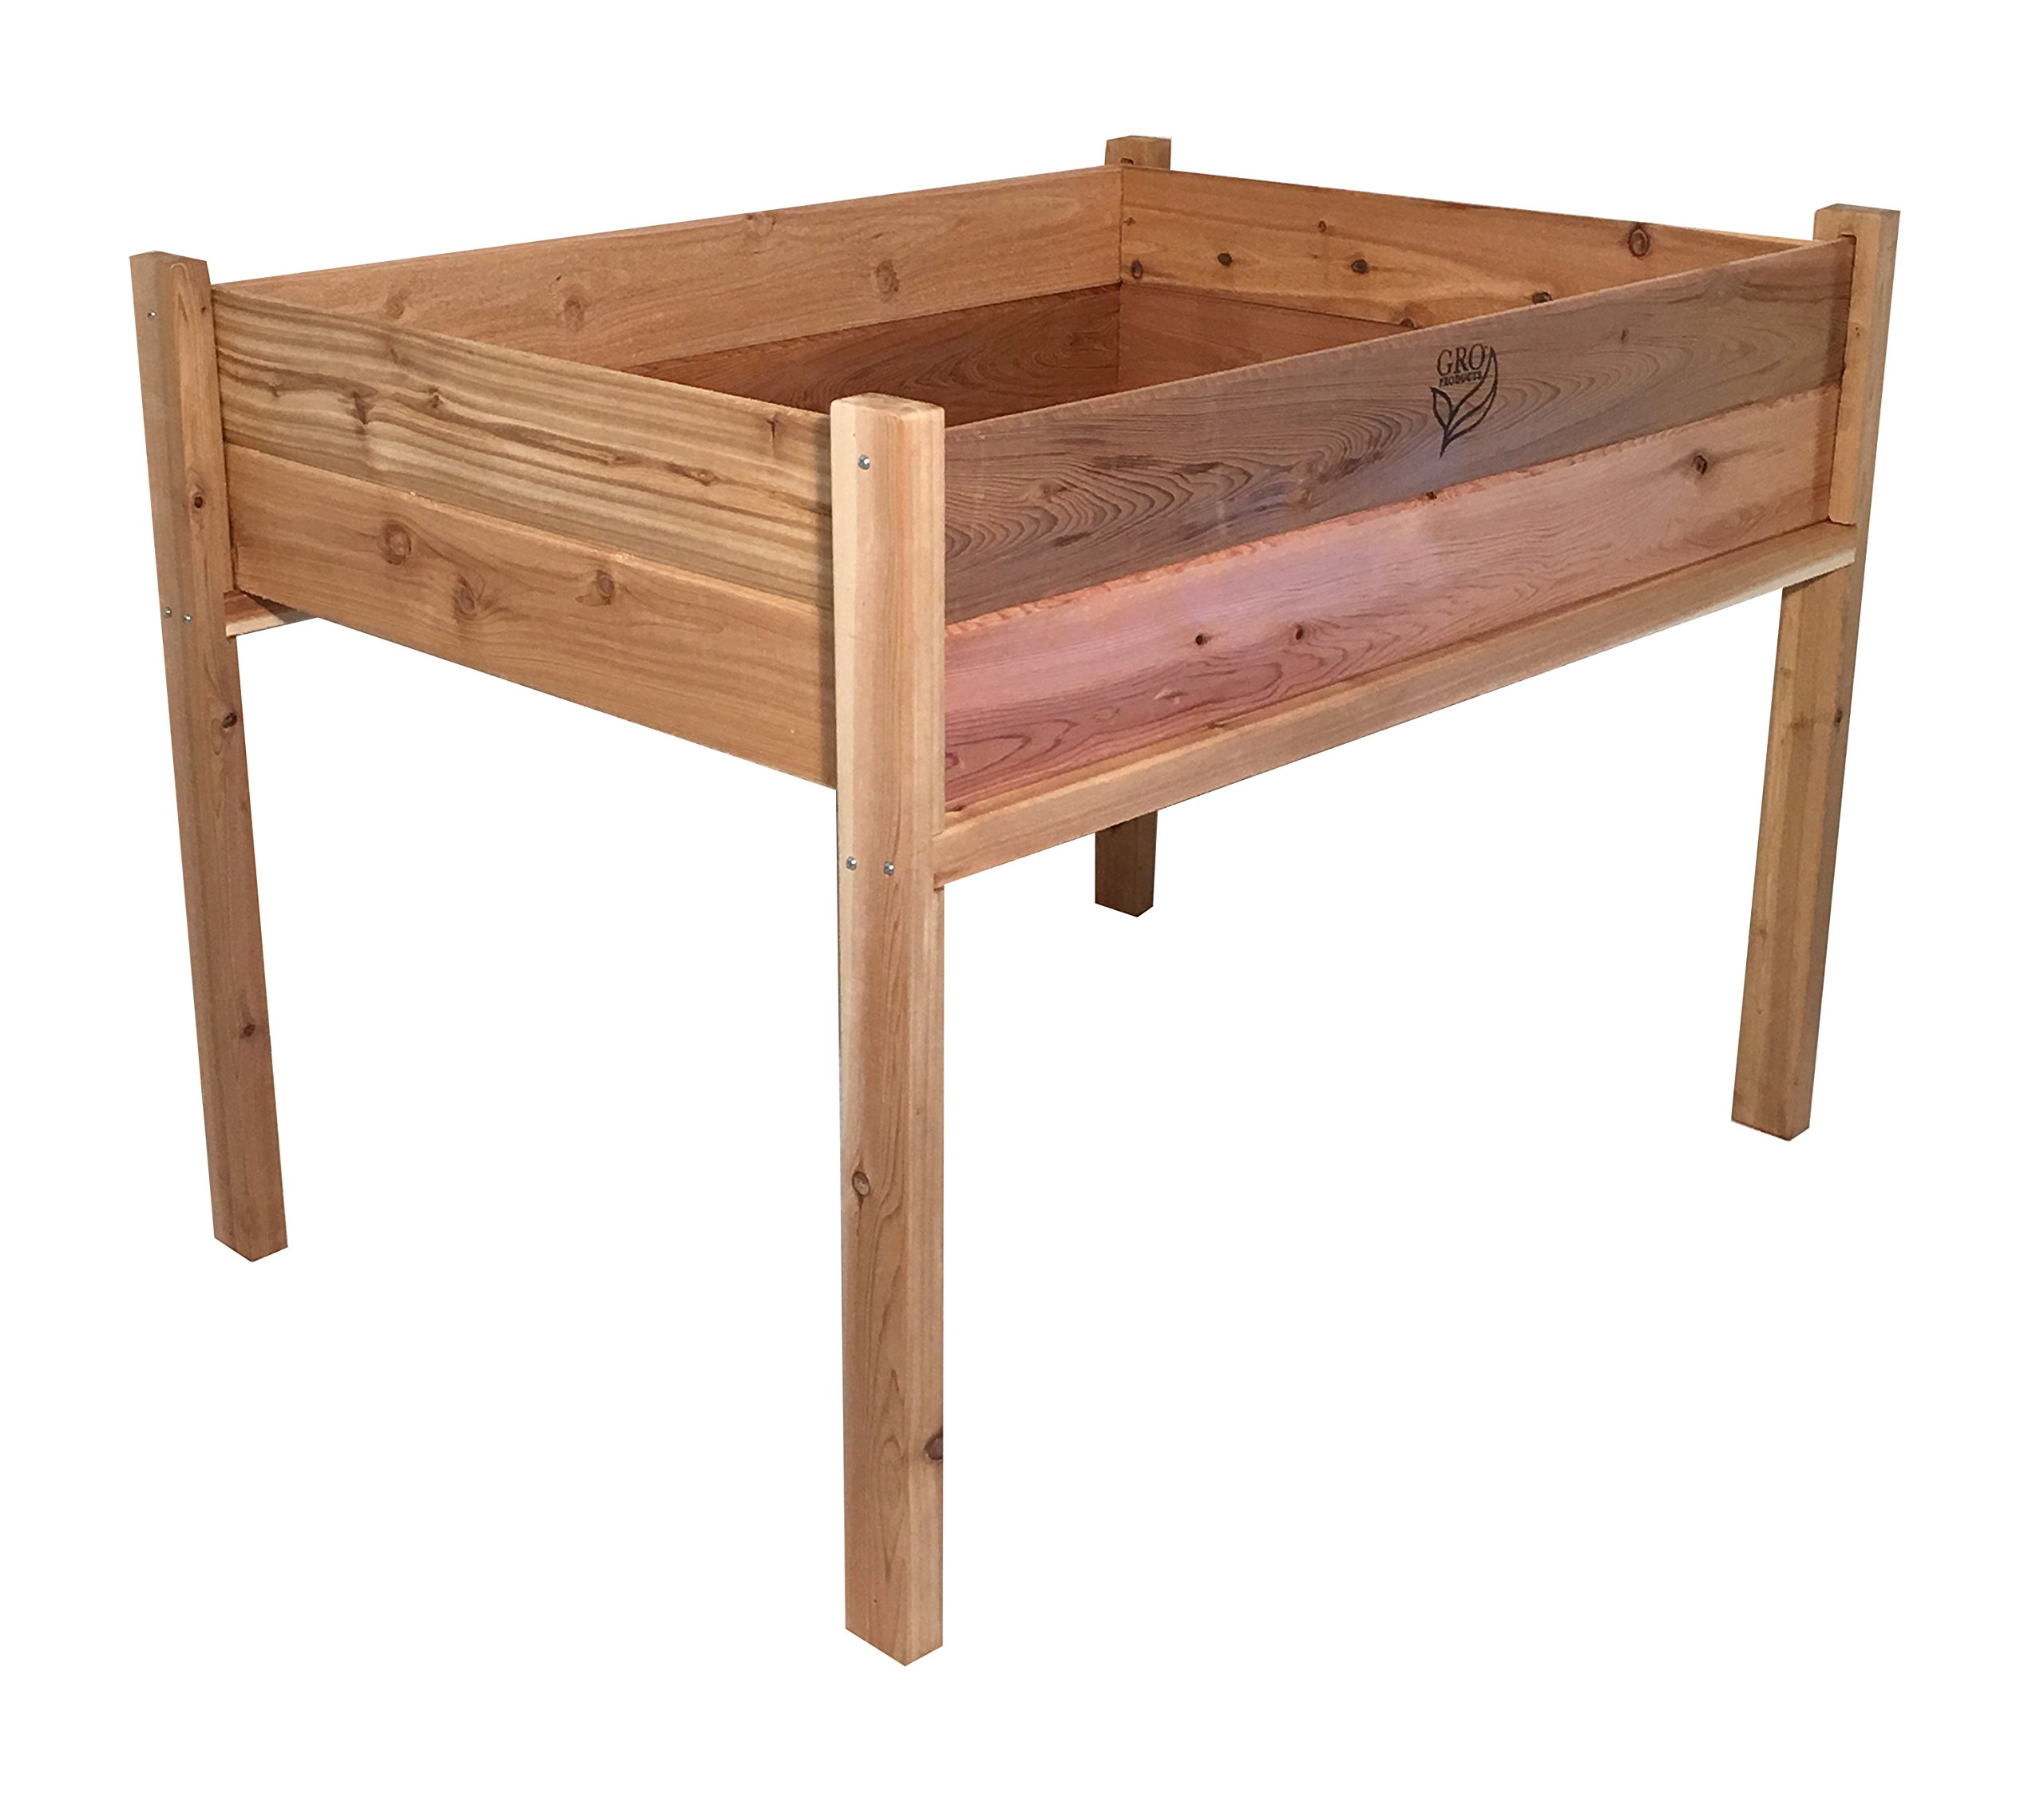 GRO Products FP-EGB3-3648 Cedar Elevated Garden Bed Planter, 48 x 36 x 34 Inches by Gro